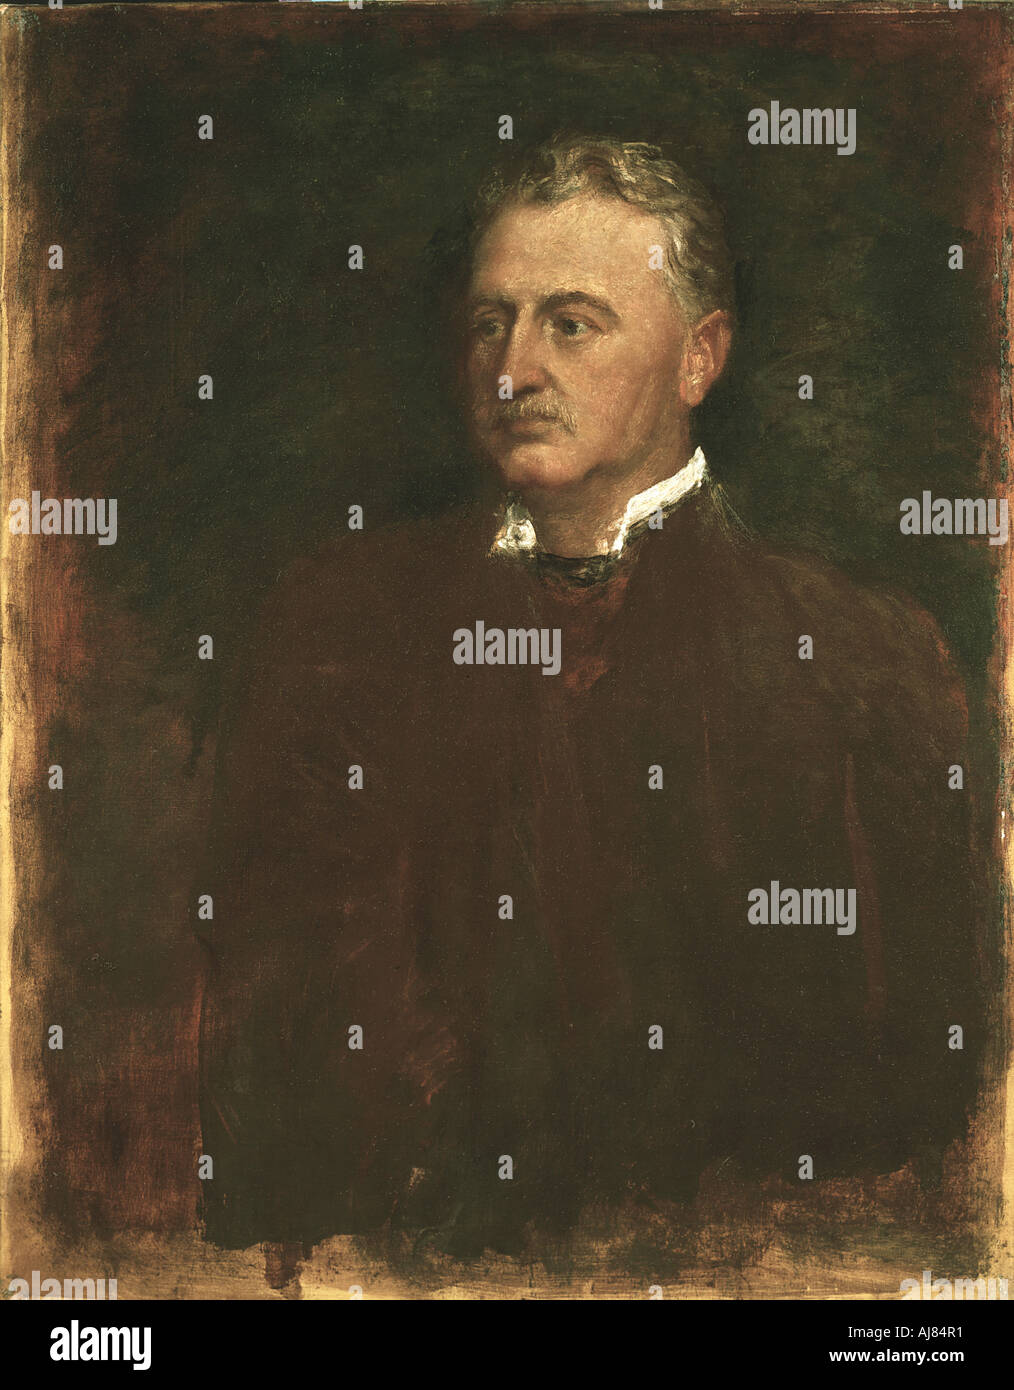 Cecil Rhodes English born South African statesman 1898  - Stock Image